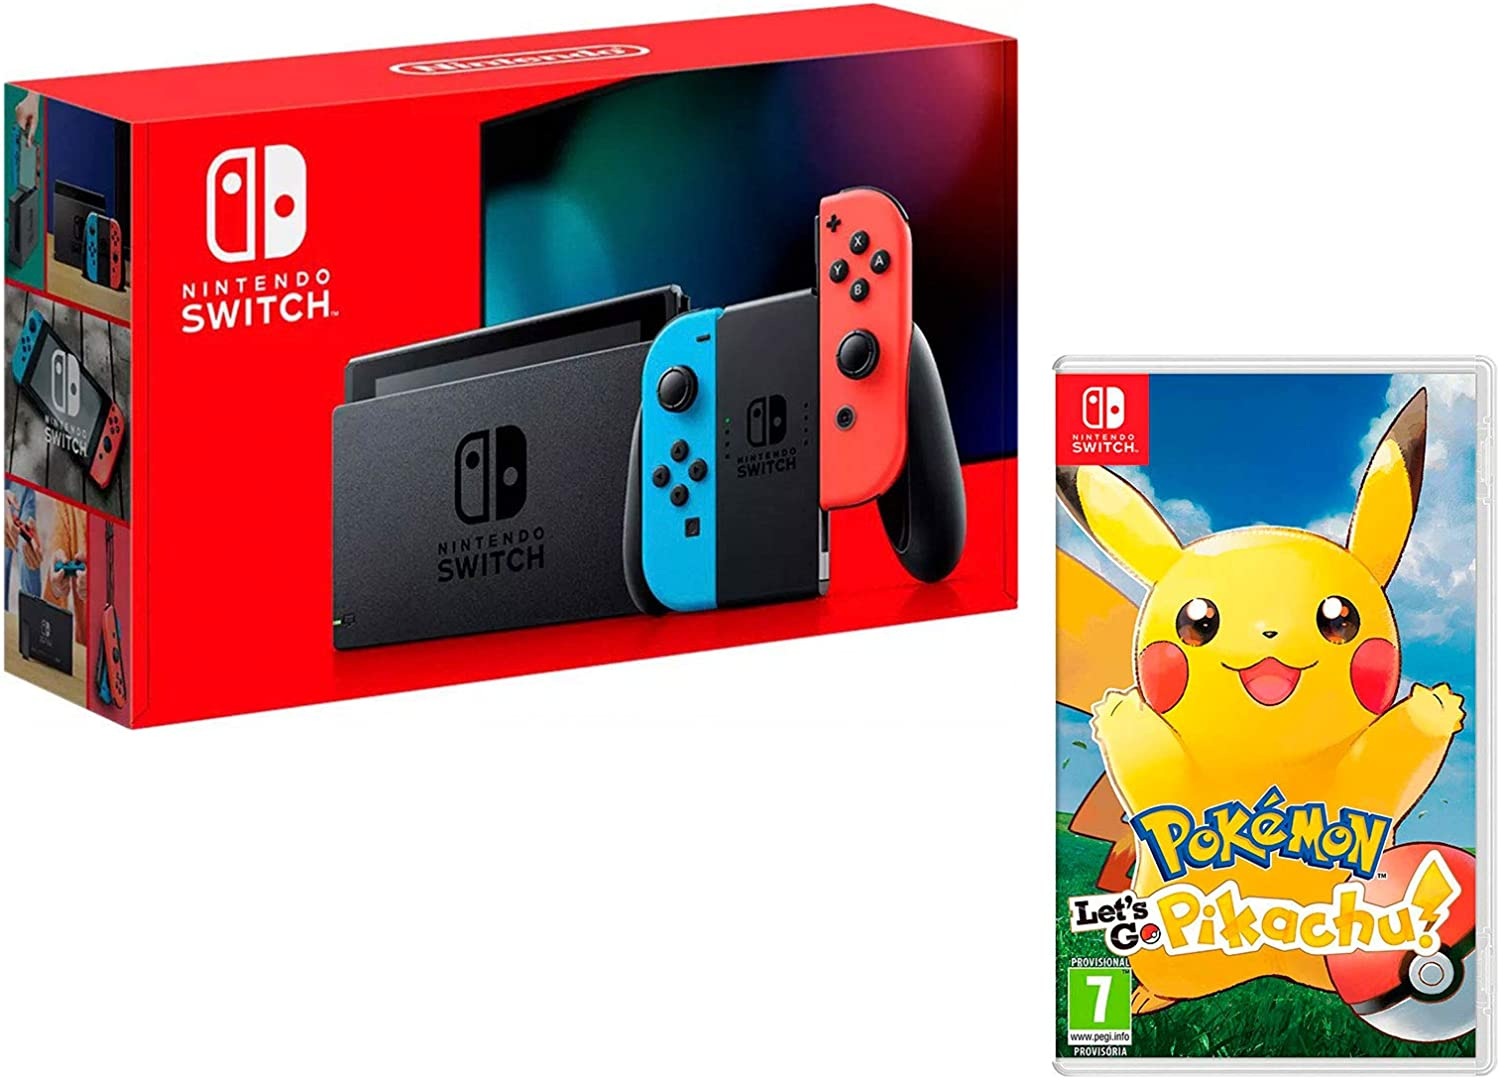 Nintendo Switch 32Gb Neon-Rot/Neon-Blau + Pokémon: Let´s Go, Pikachu!: Amazon.es: Videojuegos